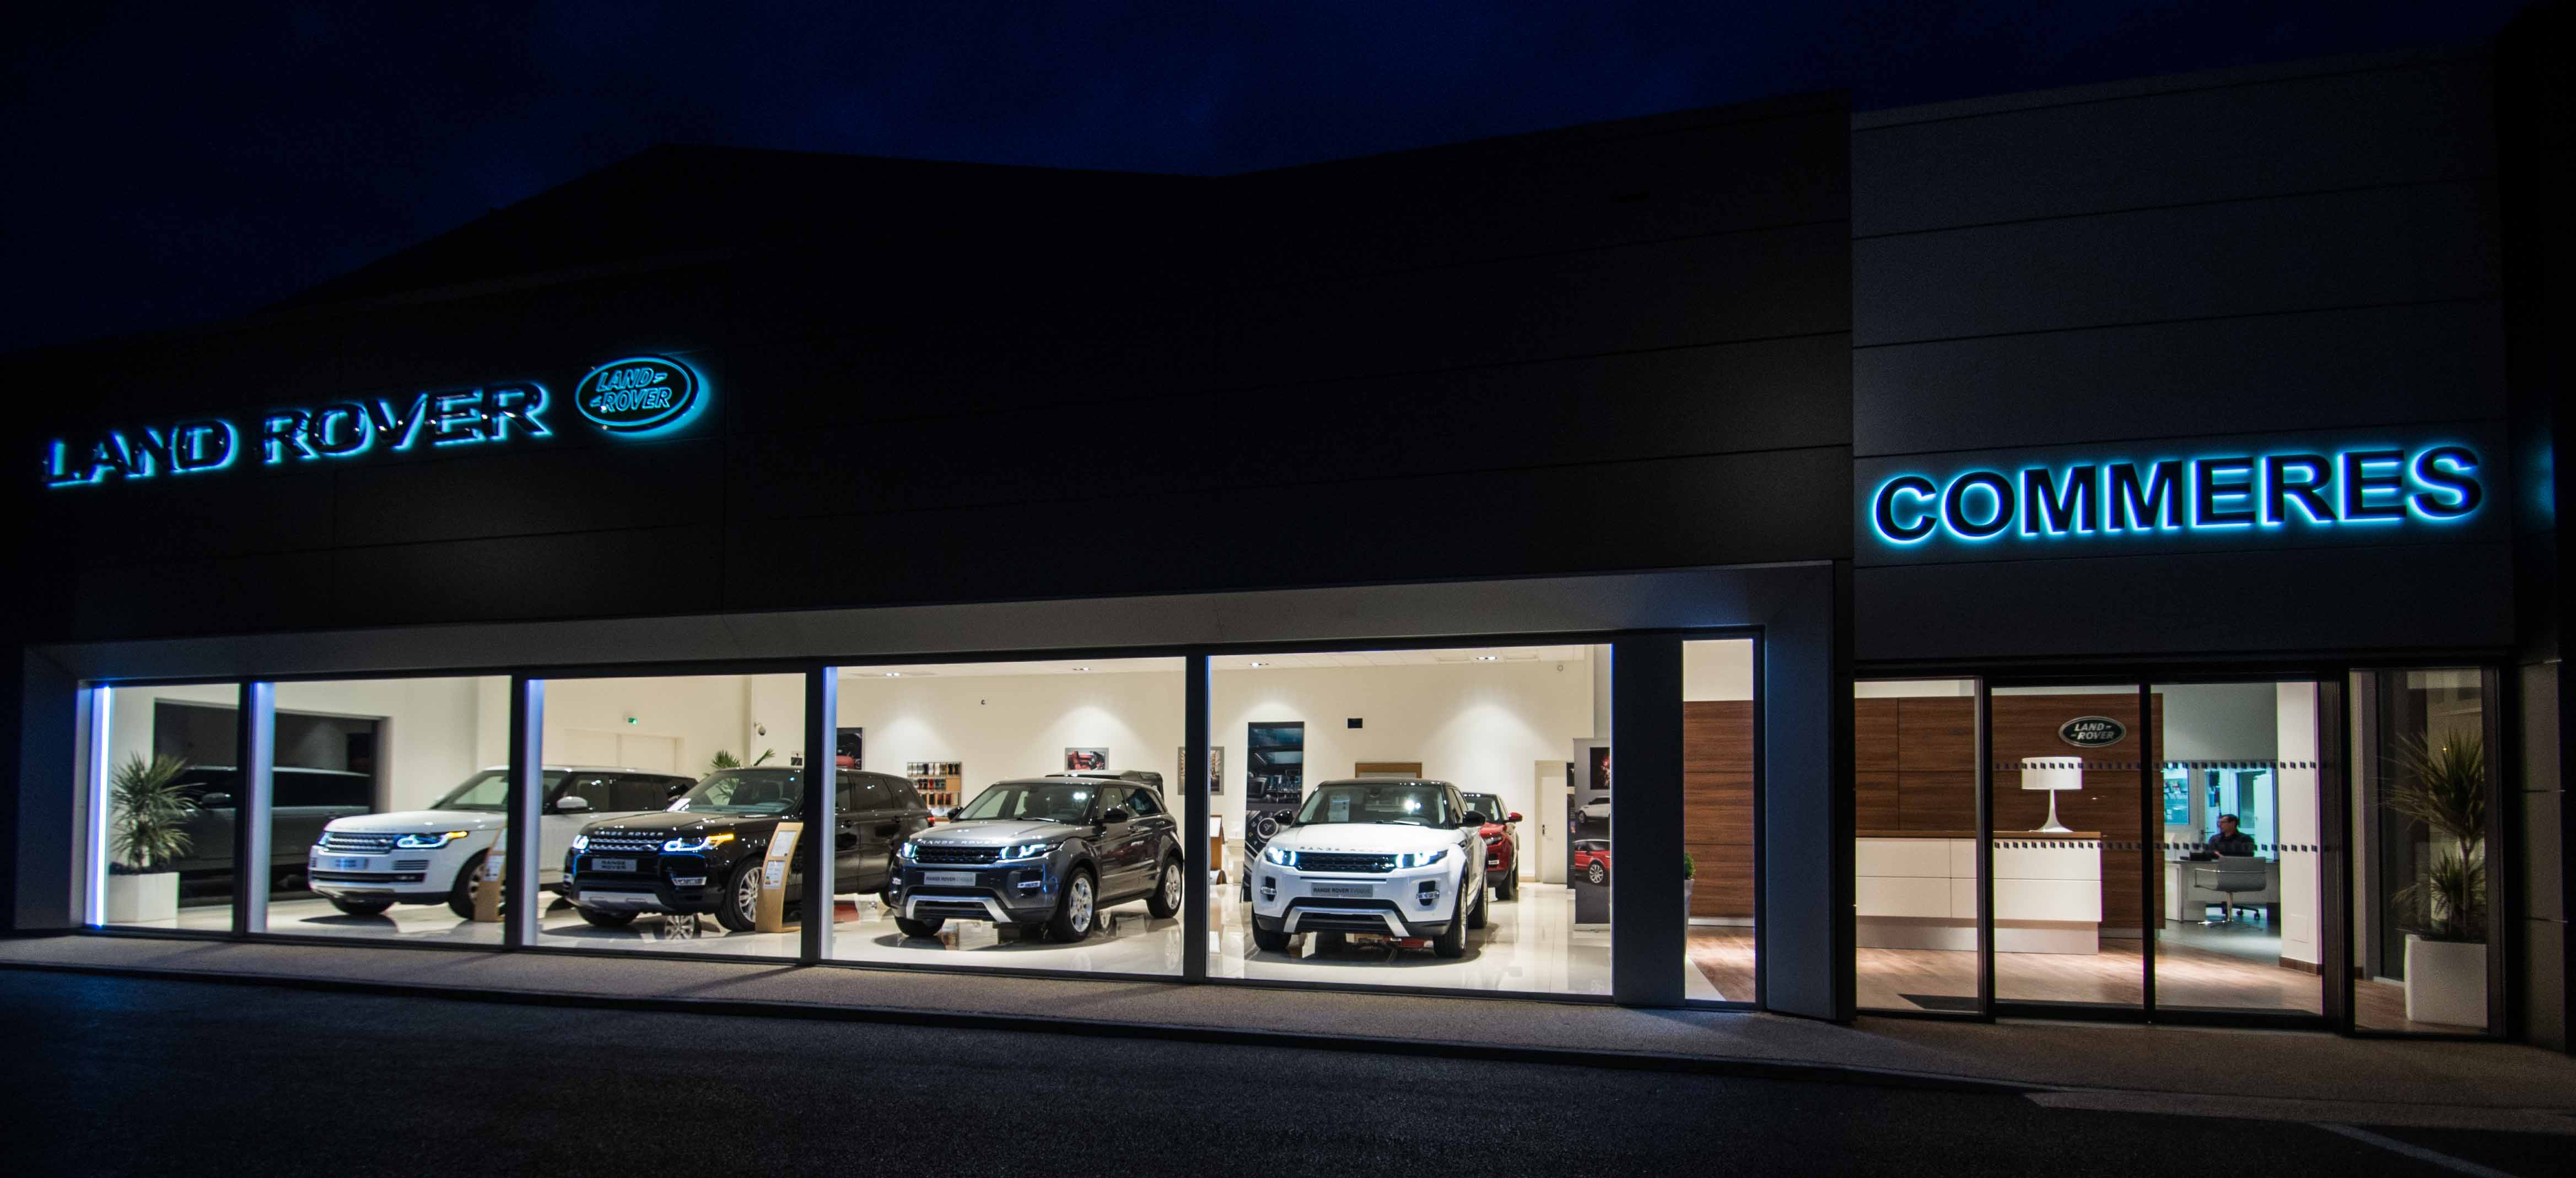 pr sentation de la soci t jaguar land rover tarbes commeres sas. Black Bedroom Furniture Sets. Home Design Ideas